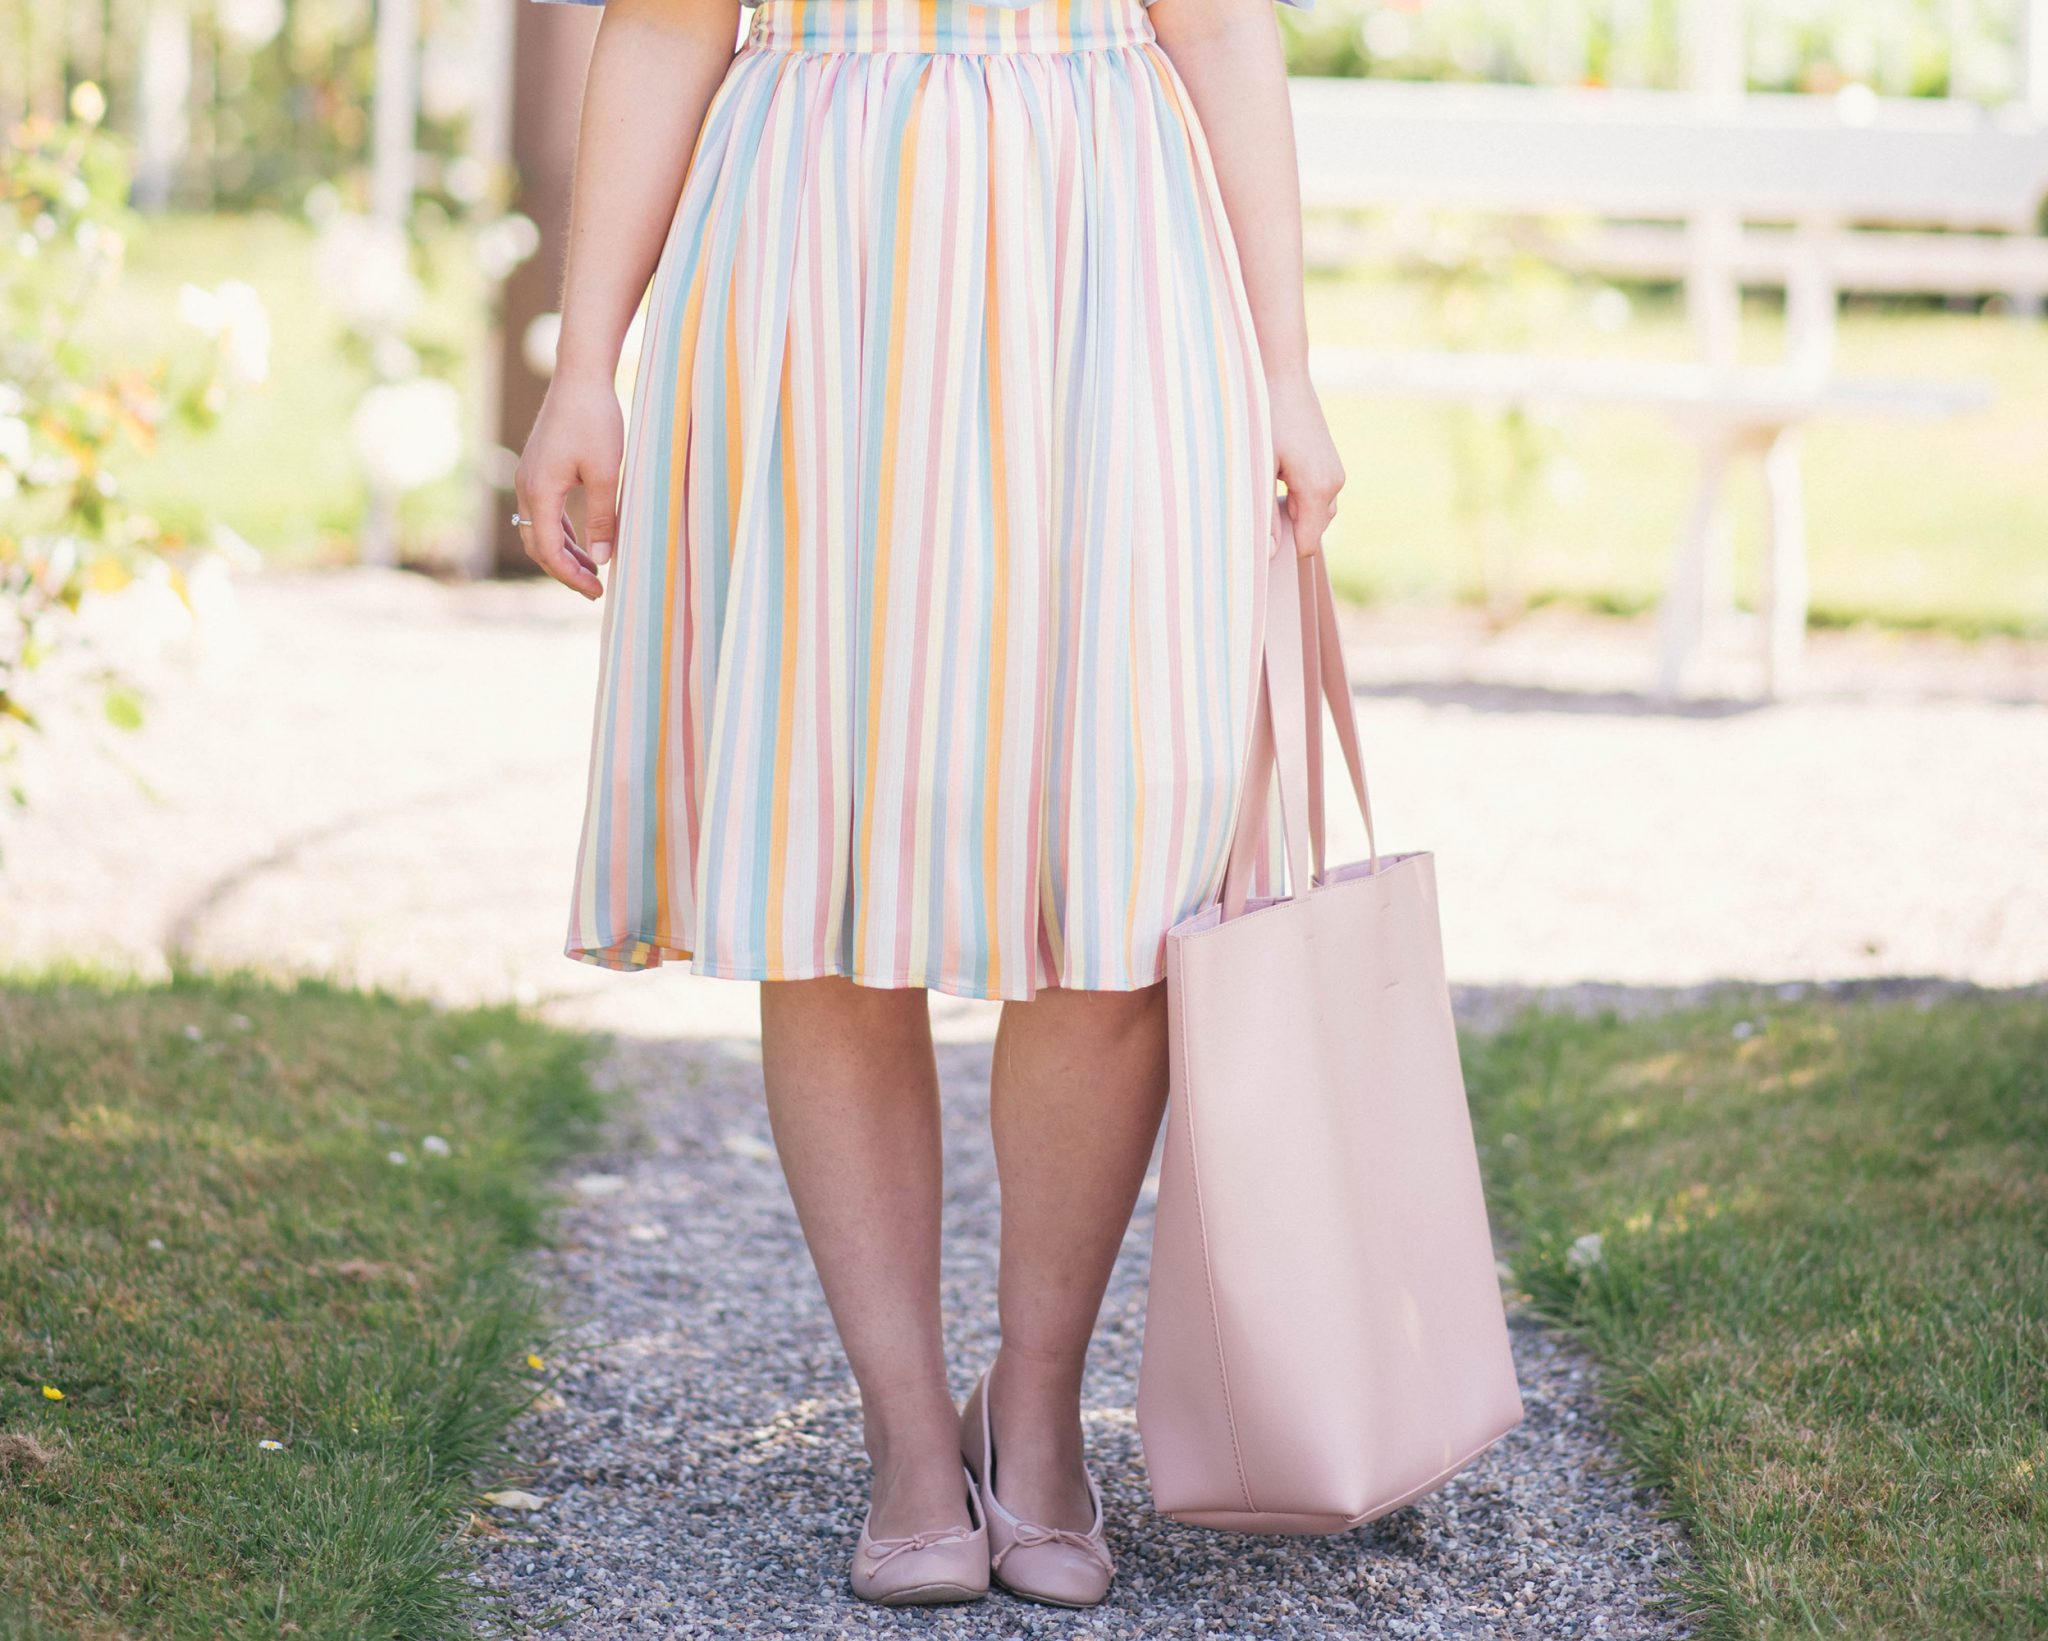 pastel-rainbow-colors-thepetitecat-outfit-inspiration